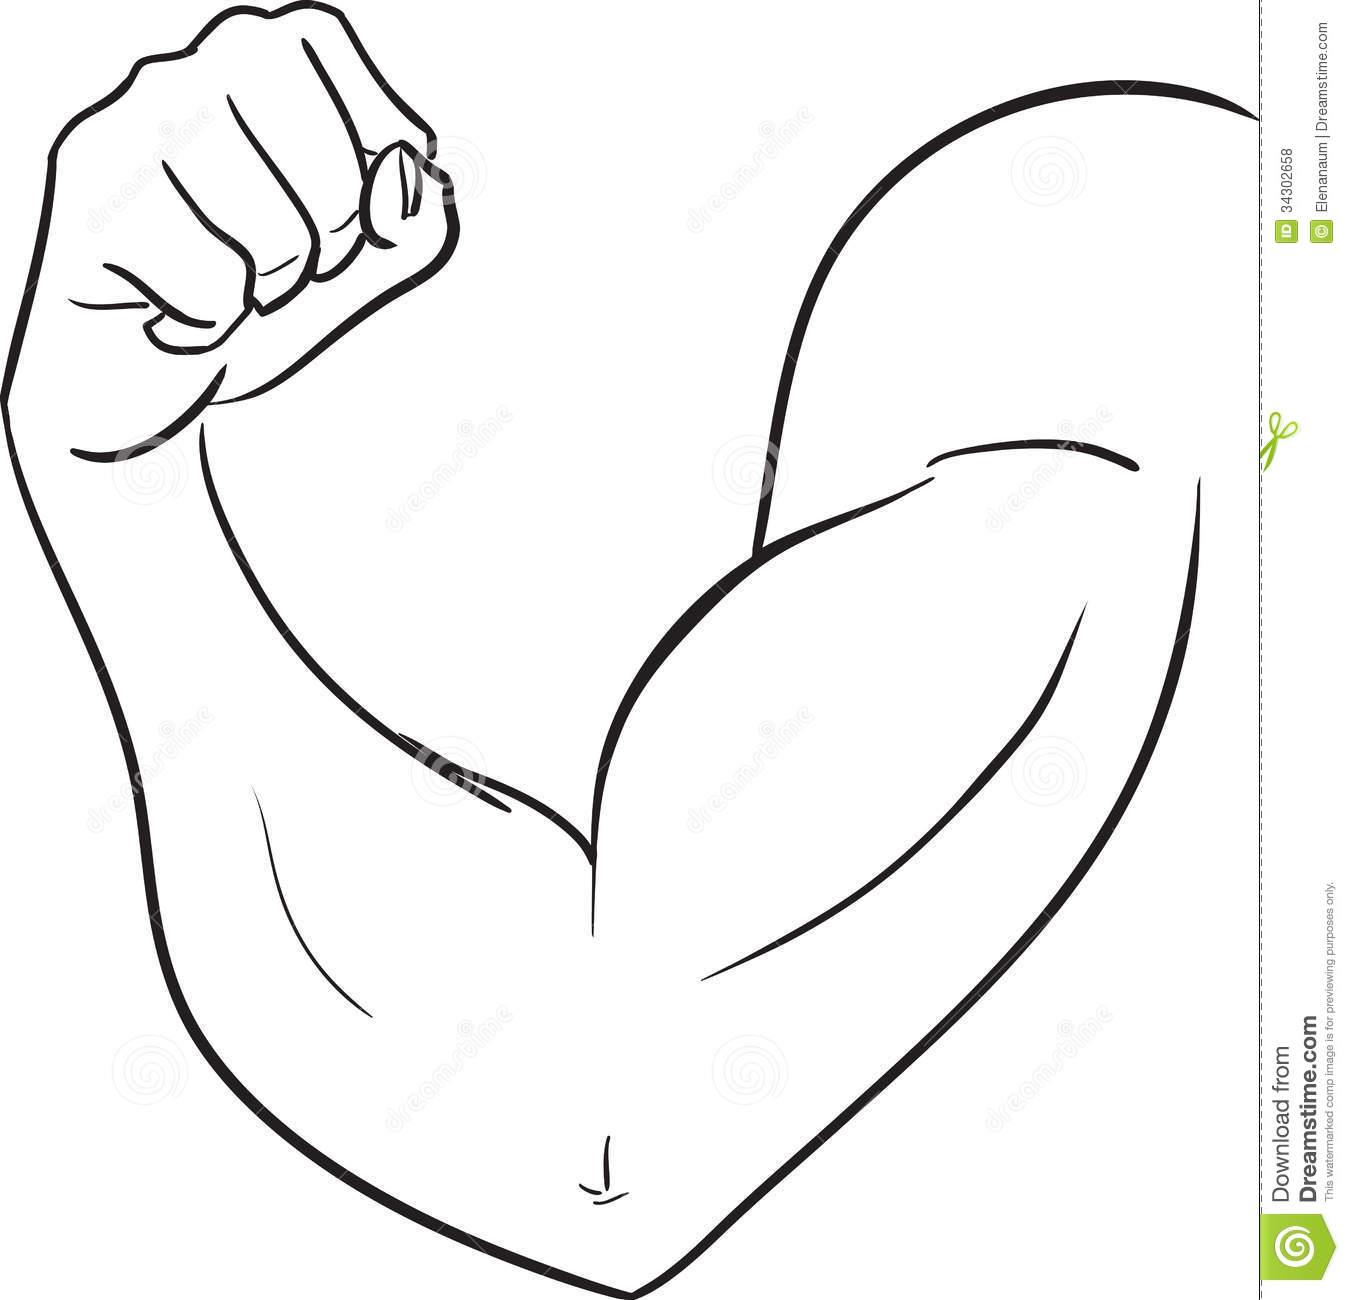 Arms clipart black and white, Arms black and white.